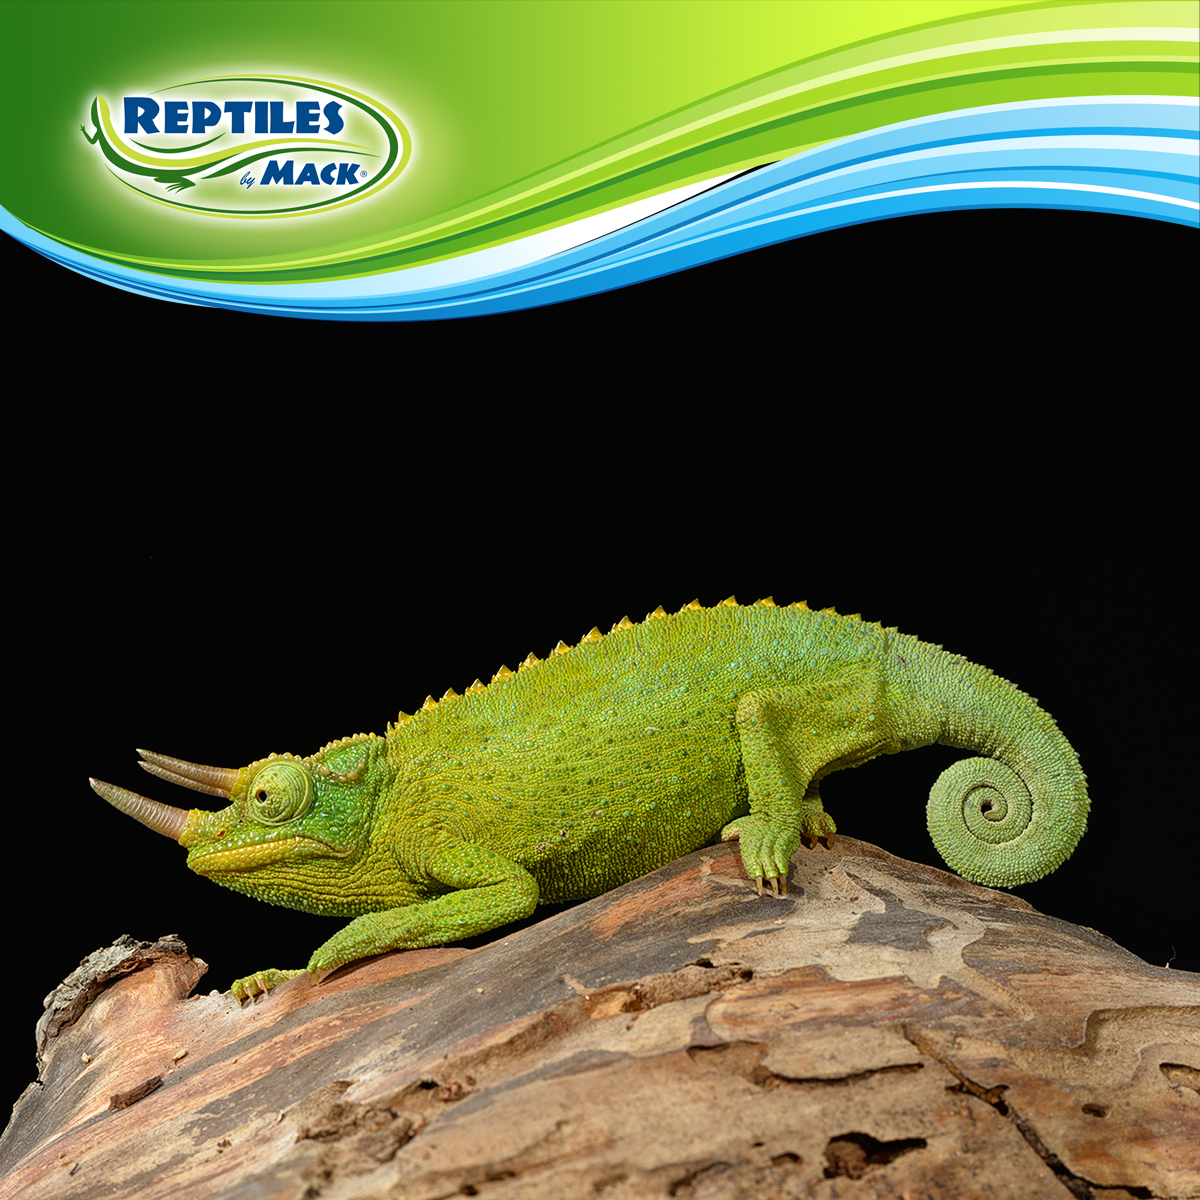 Coupons for reptiles by mack